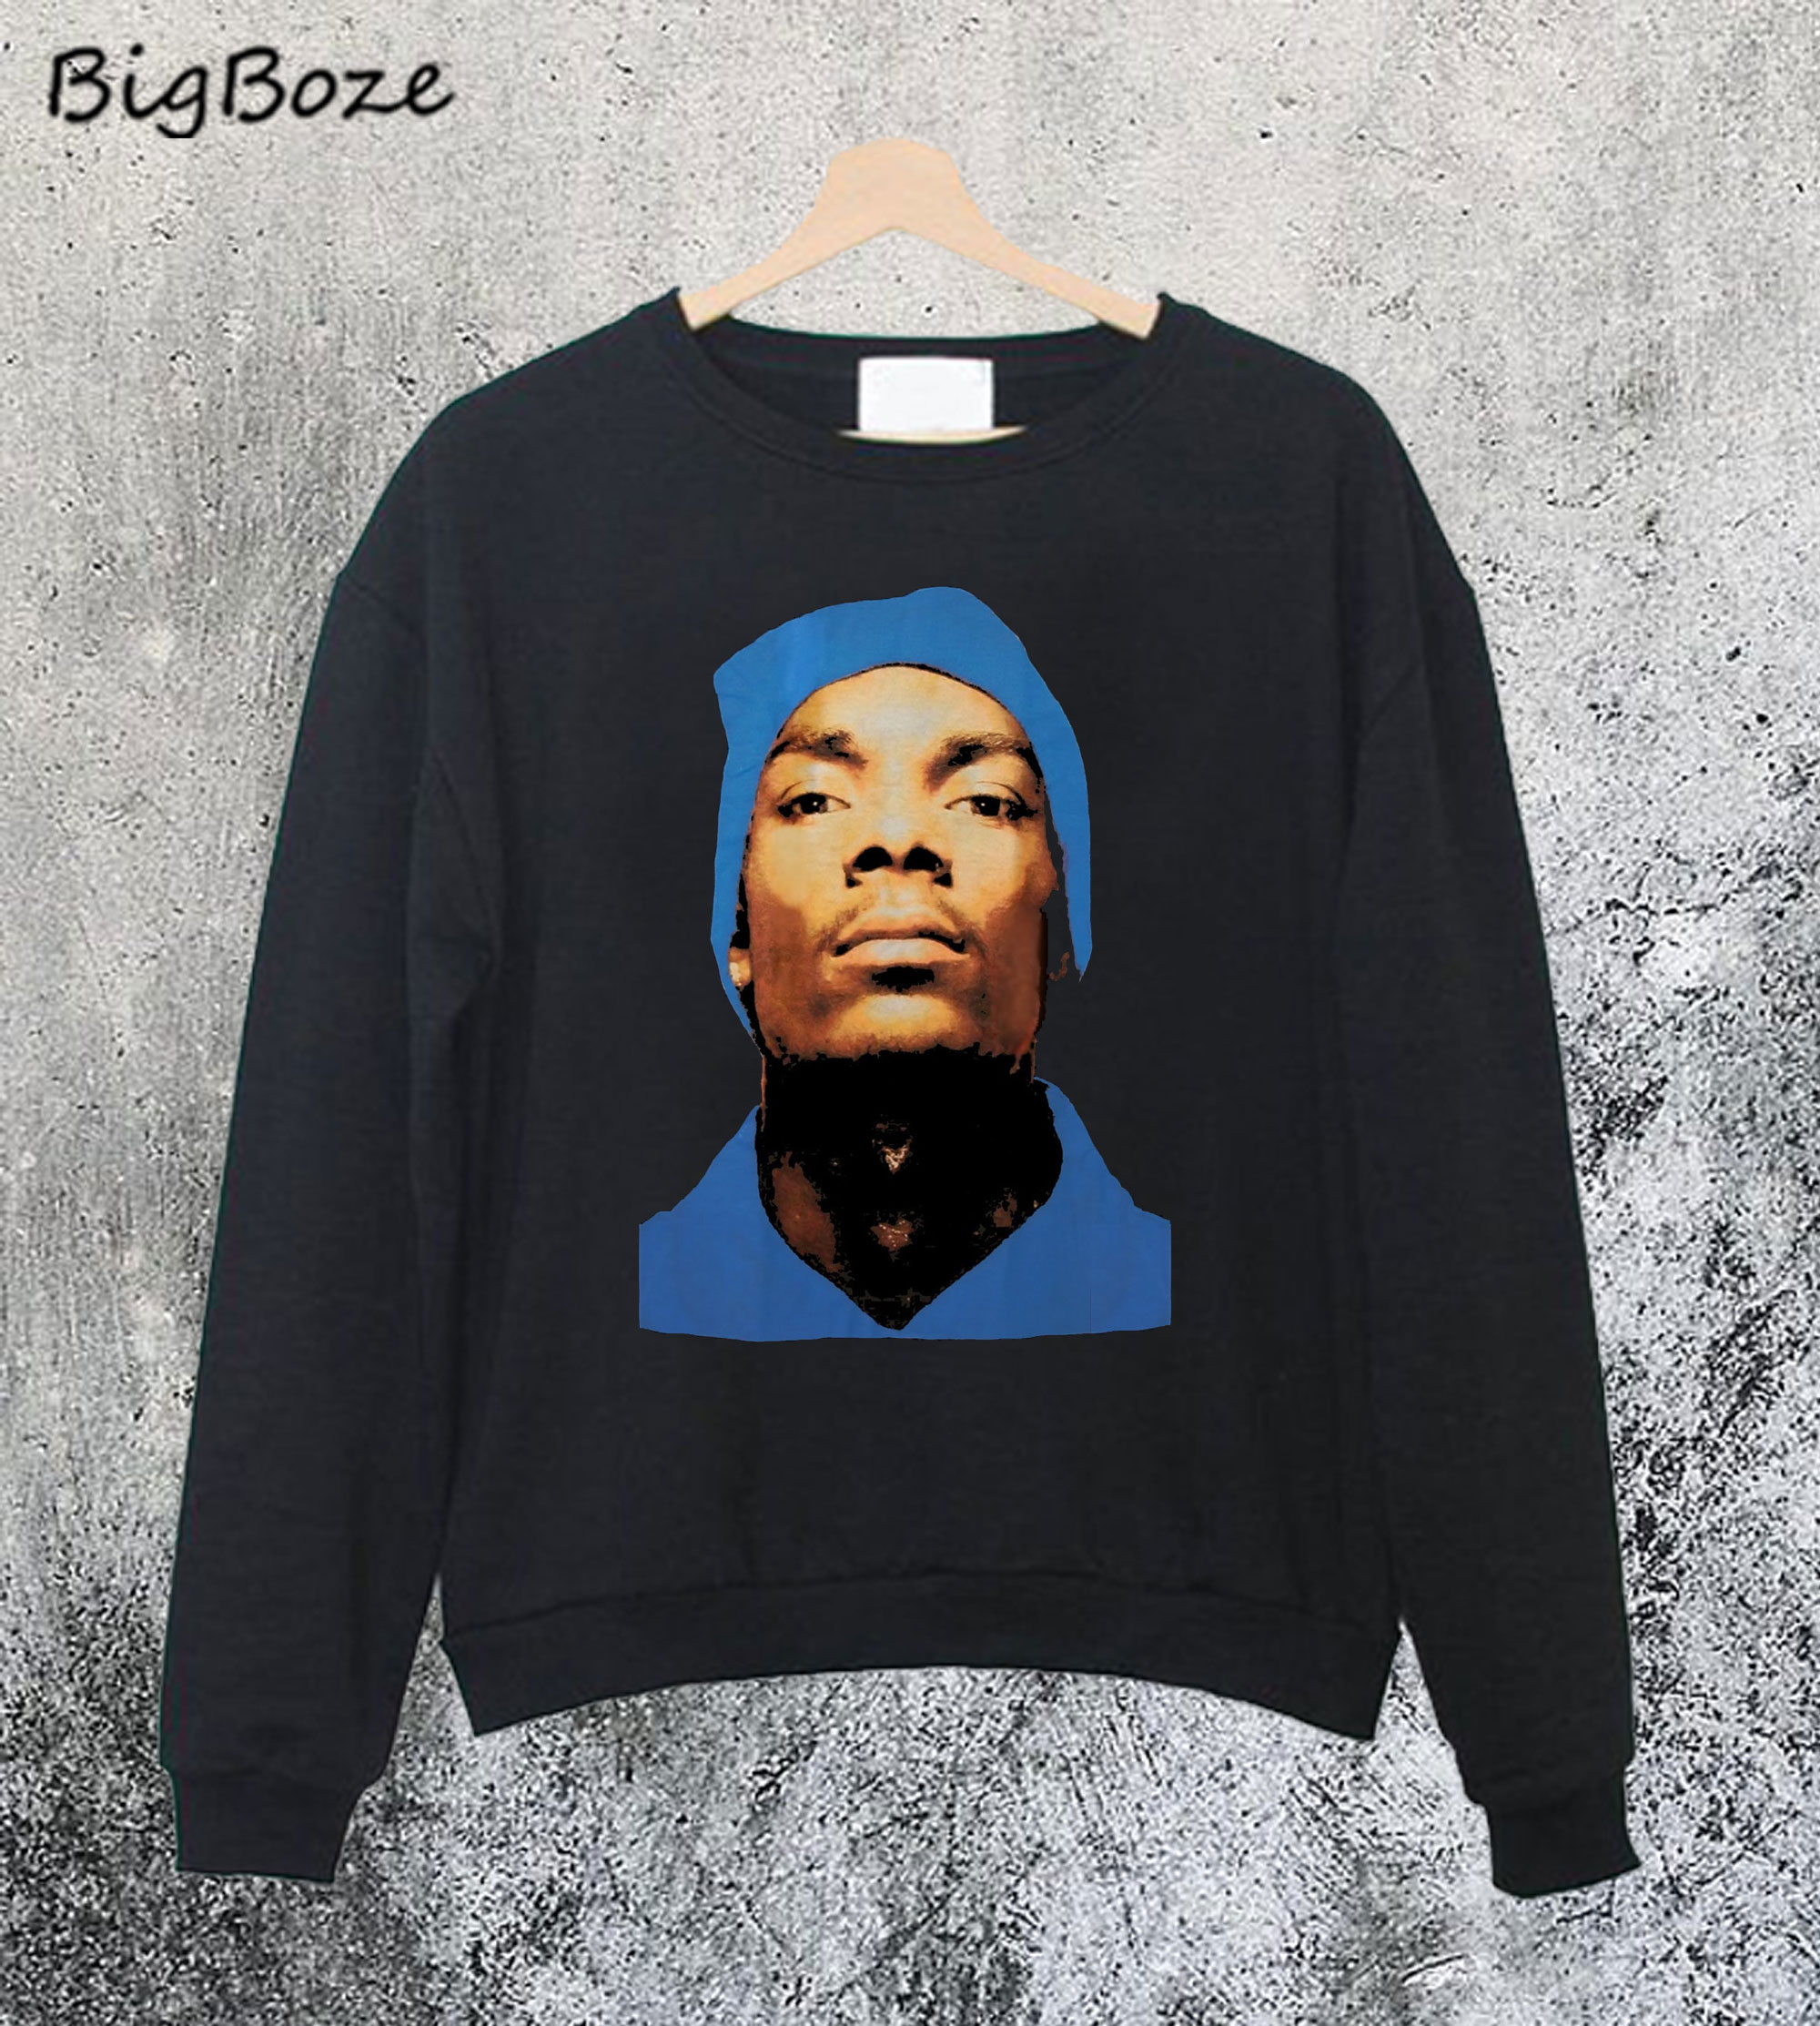 Snoop Dogg Beanie Profile Hip Hop Sweatshirt